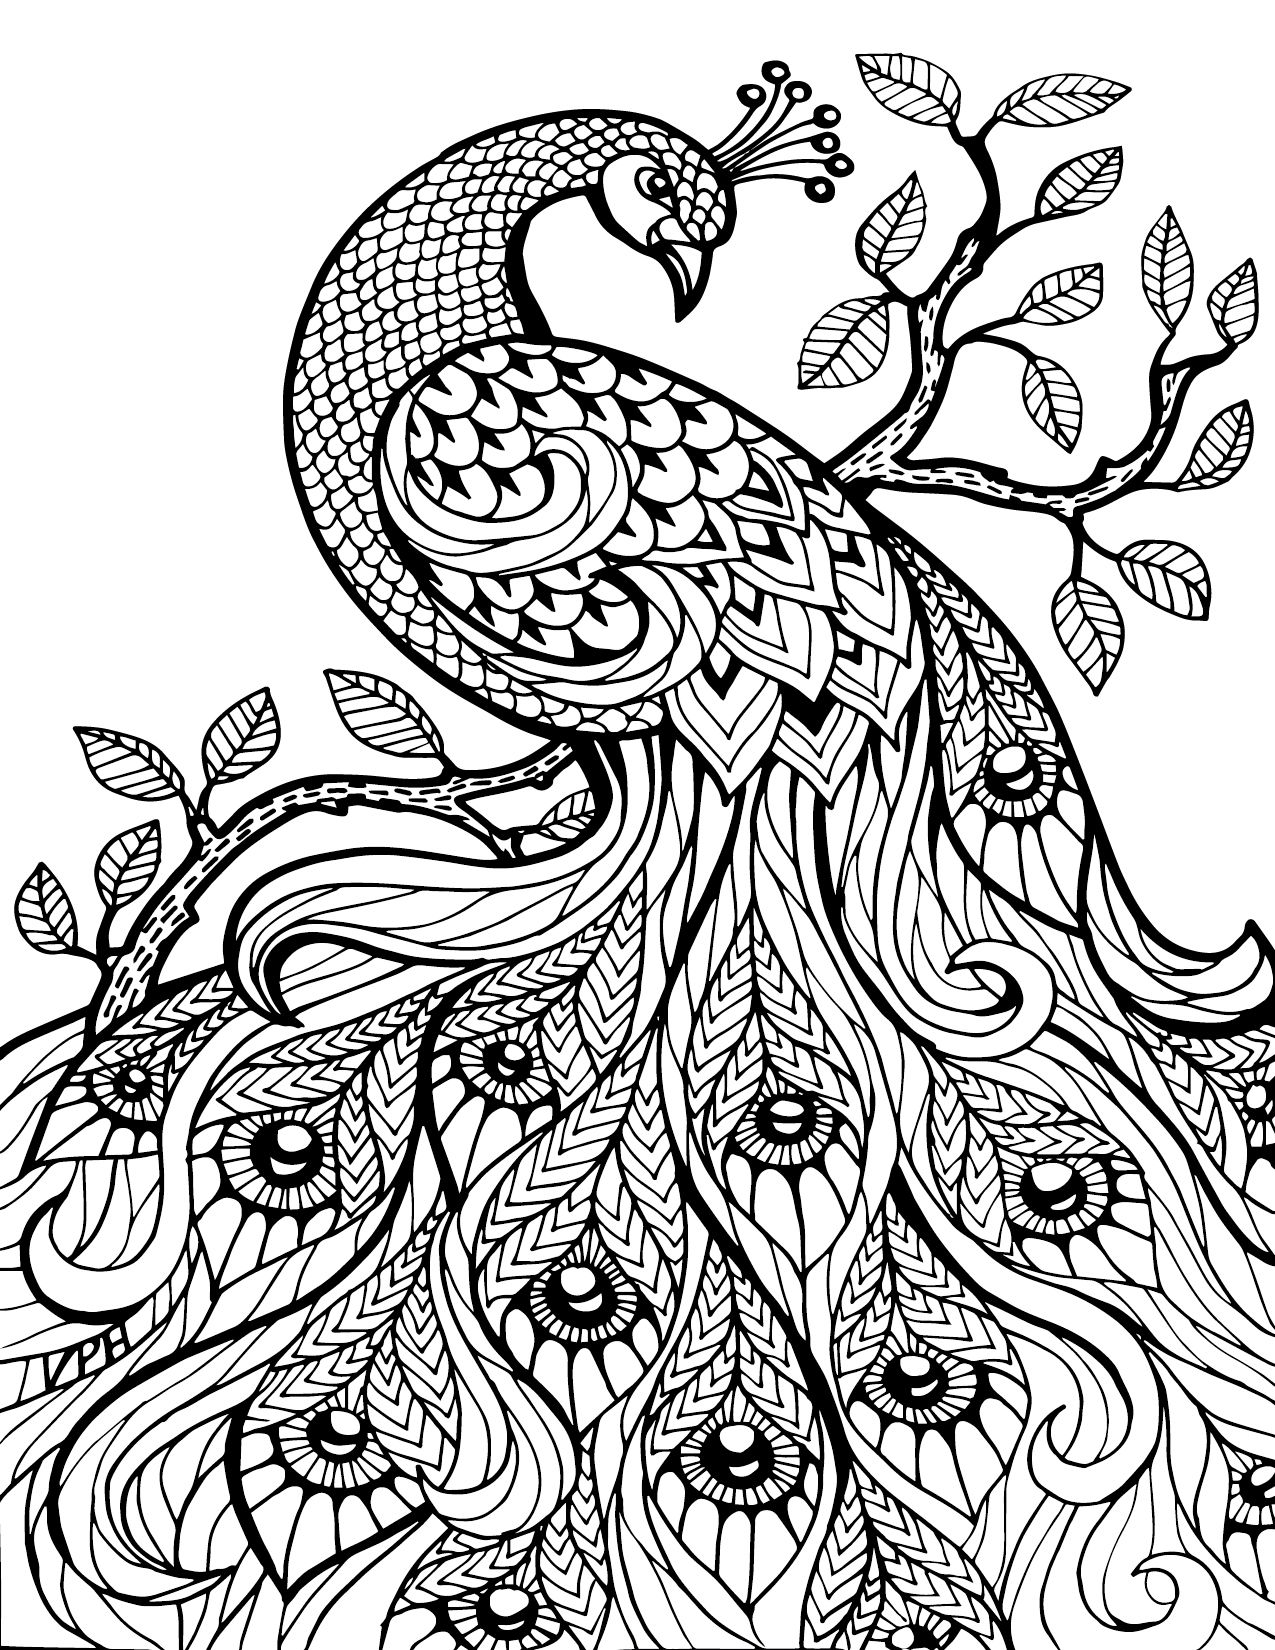 Free printable colouring in adults - Free Printable Coloring Pages For Adults Only Image 36 Art Davlin Publishing